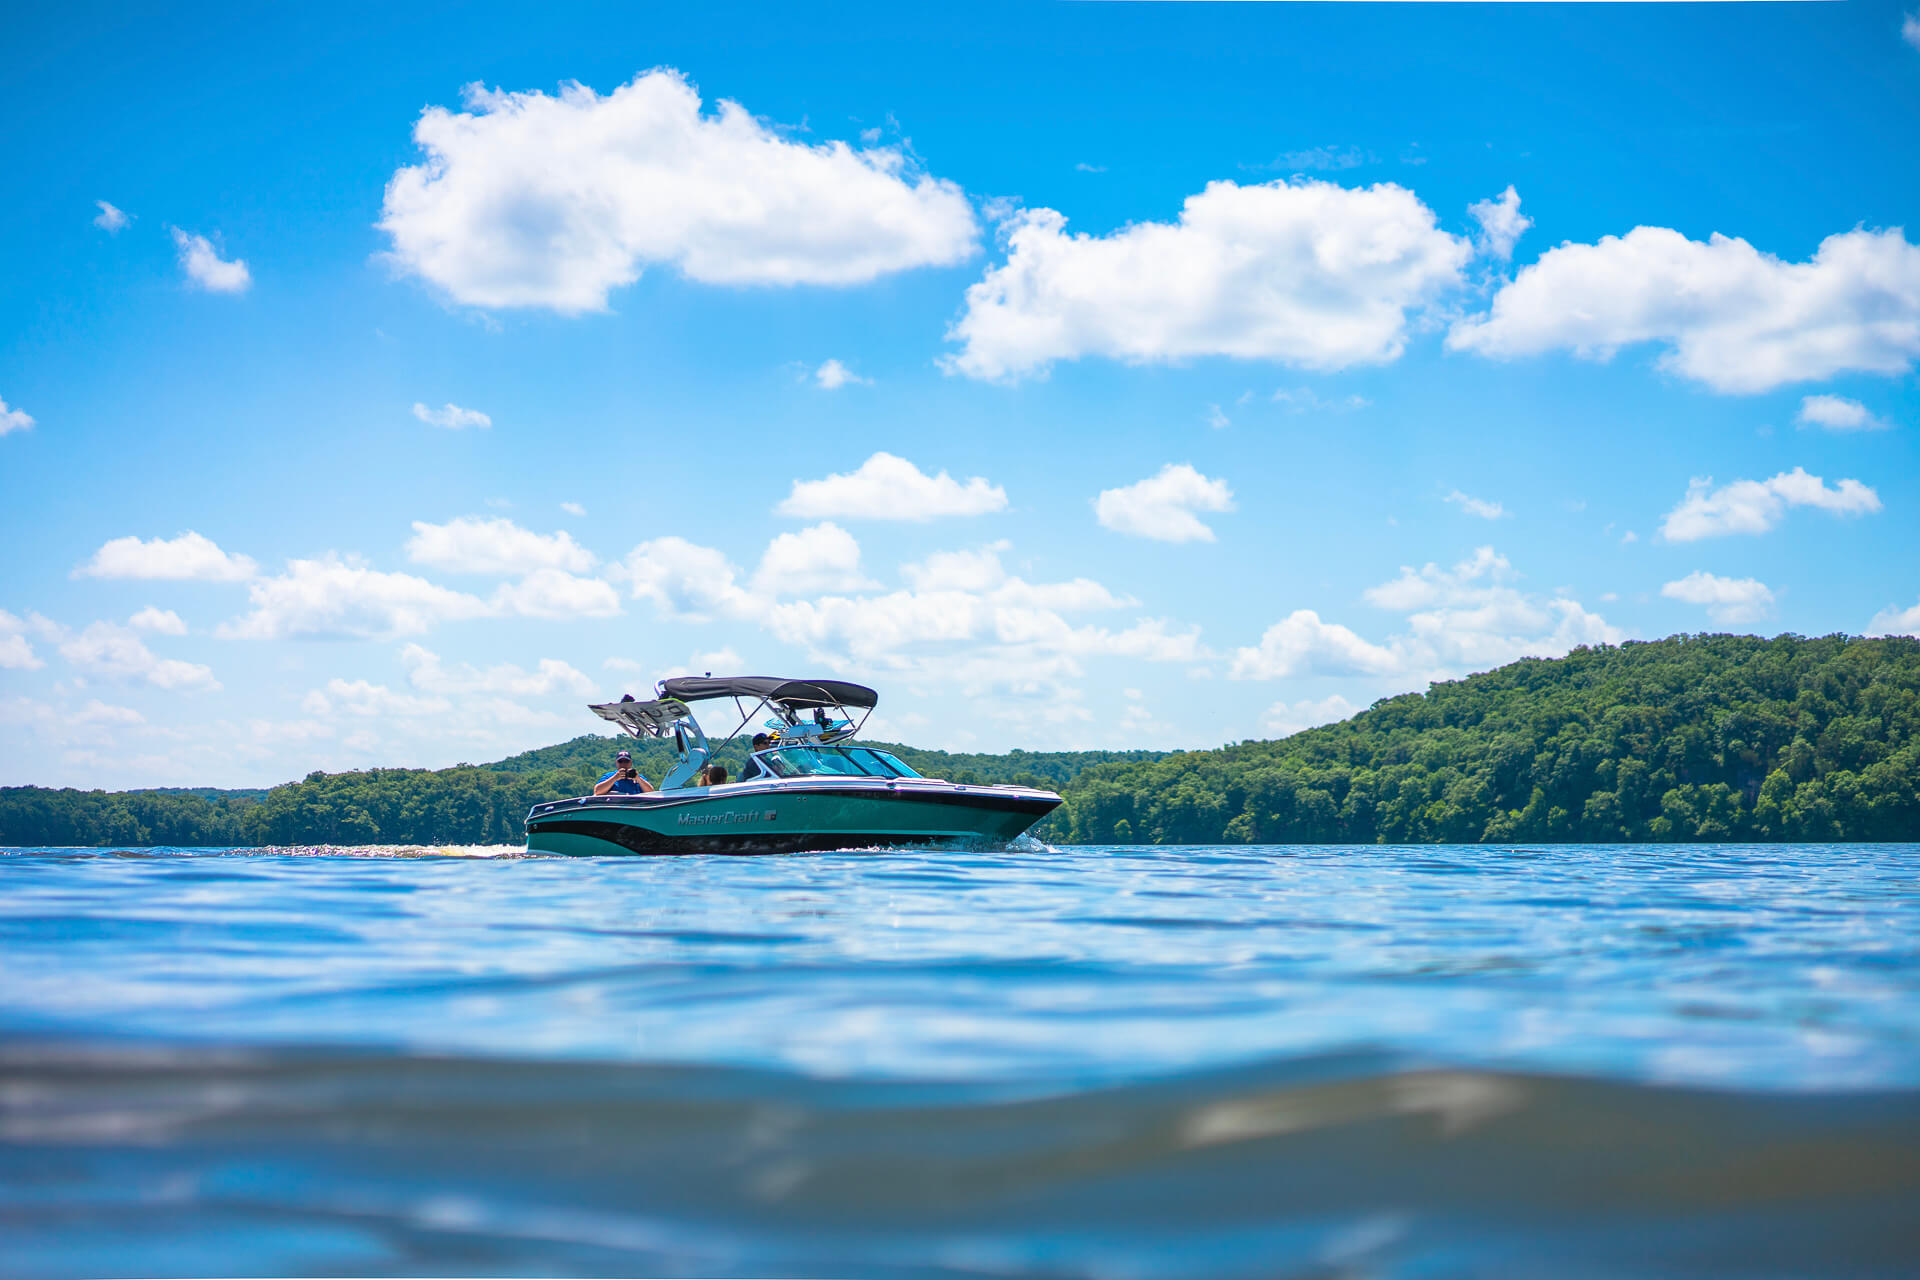 Lake of the Ozarks is a fishing destination